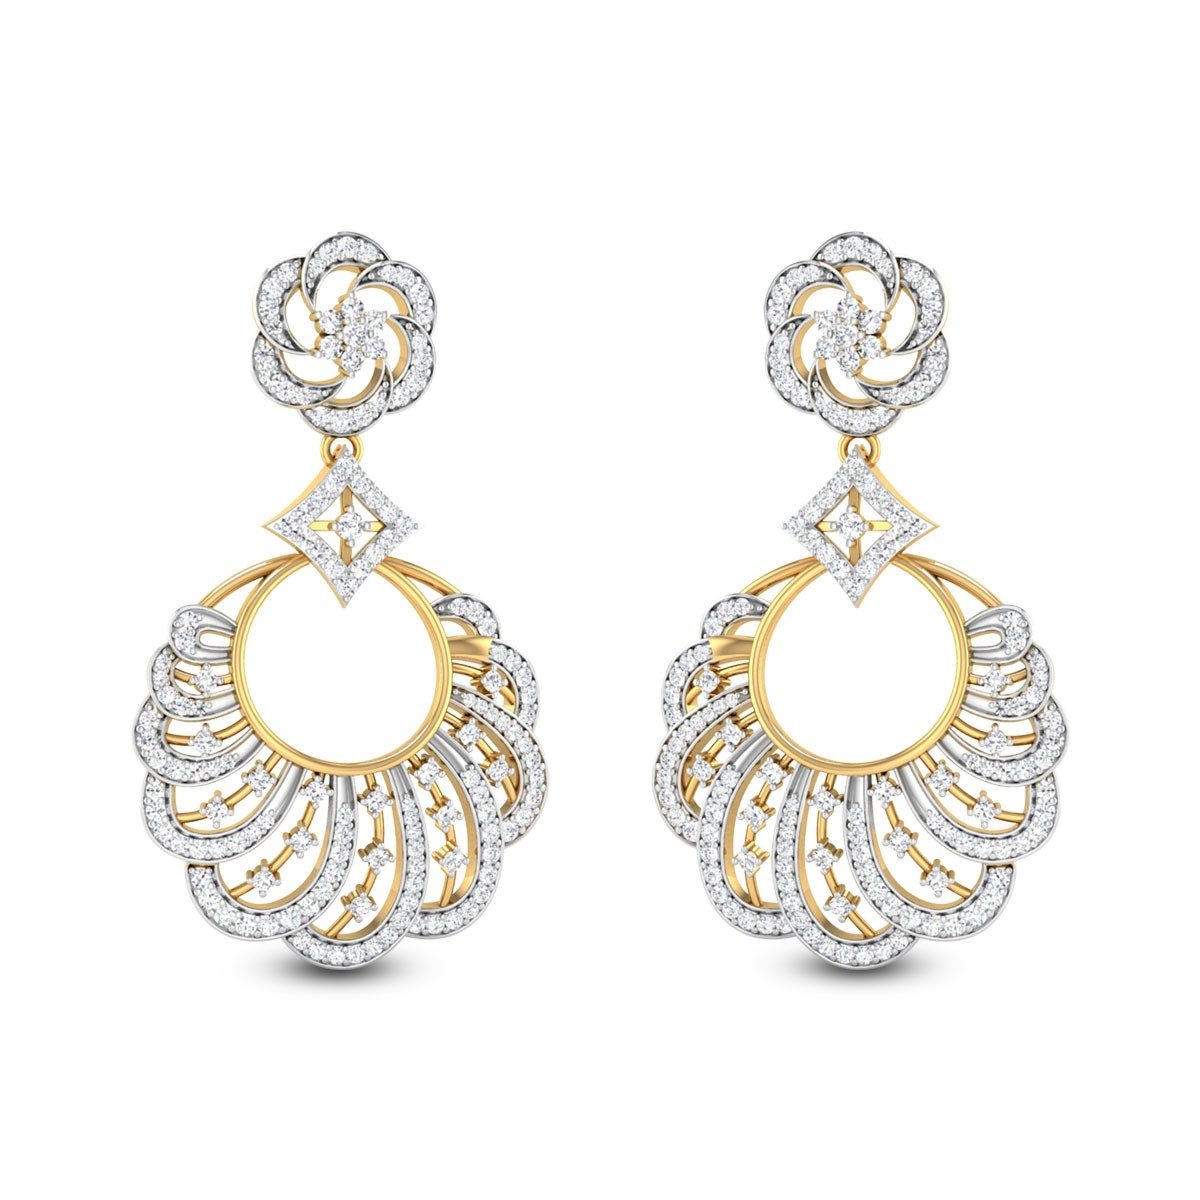 Ishani Chandelier Earrings